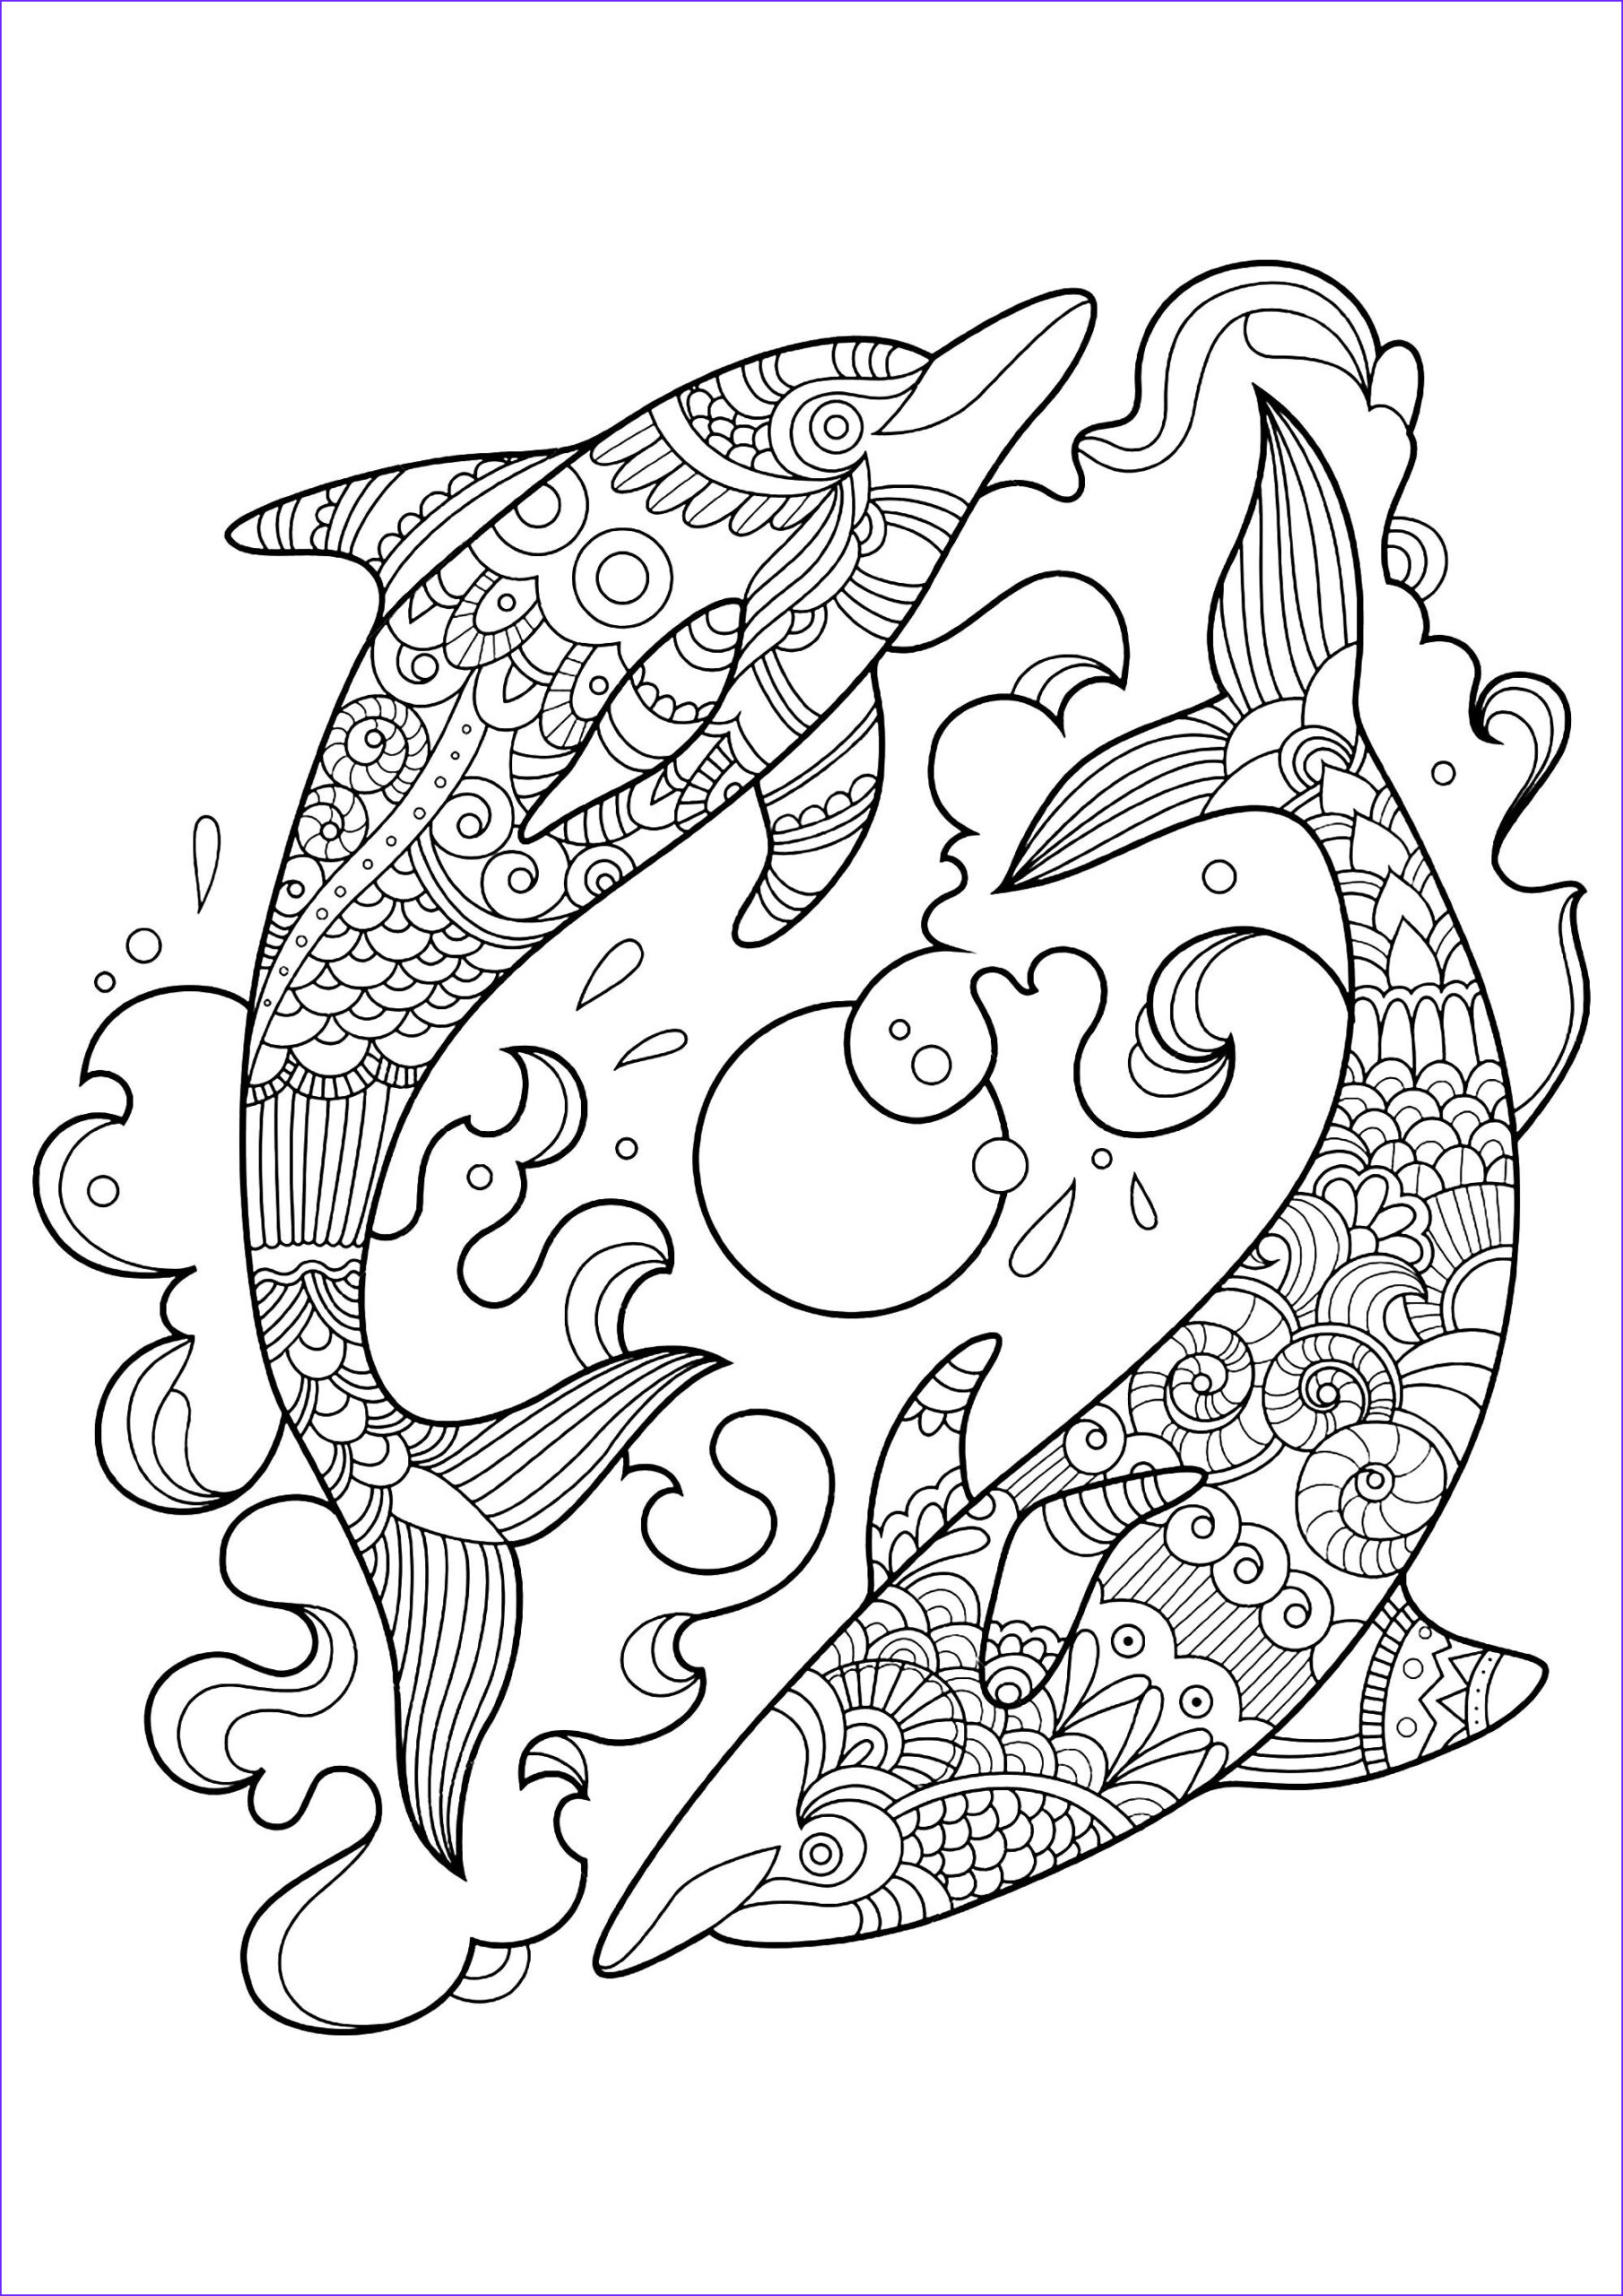 Coloring Sheets for toddlers Elegant Image Dolphins to Color for Children Dolphins Kids Coloring Pages